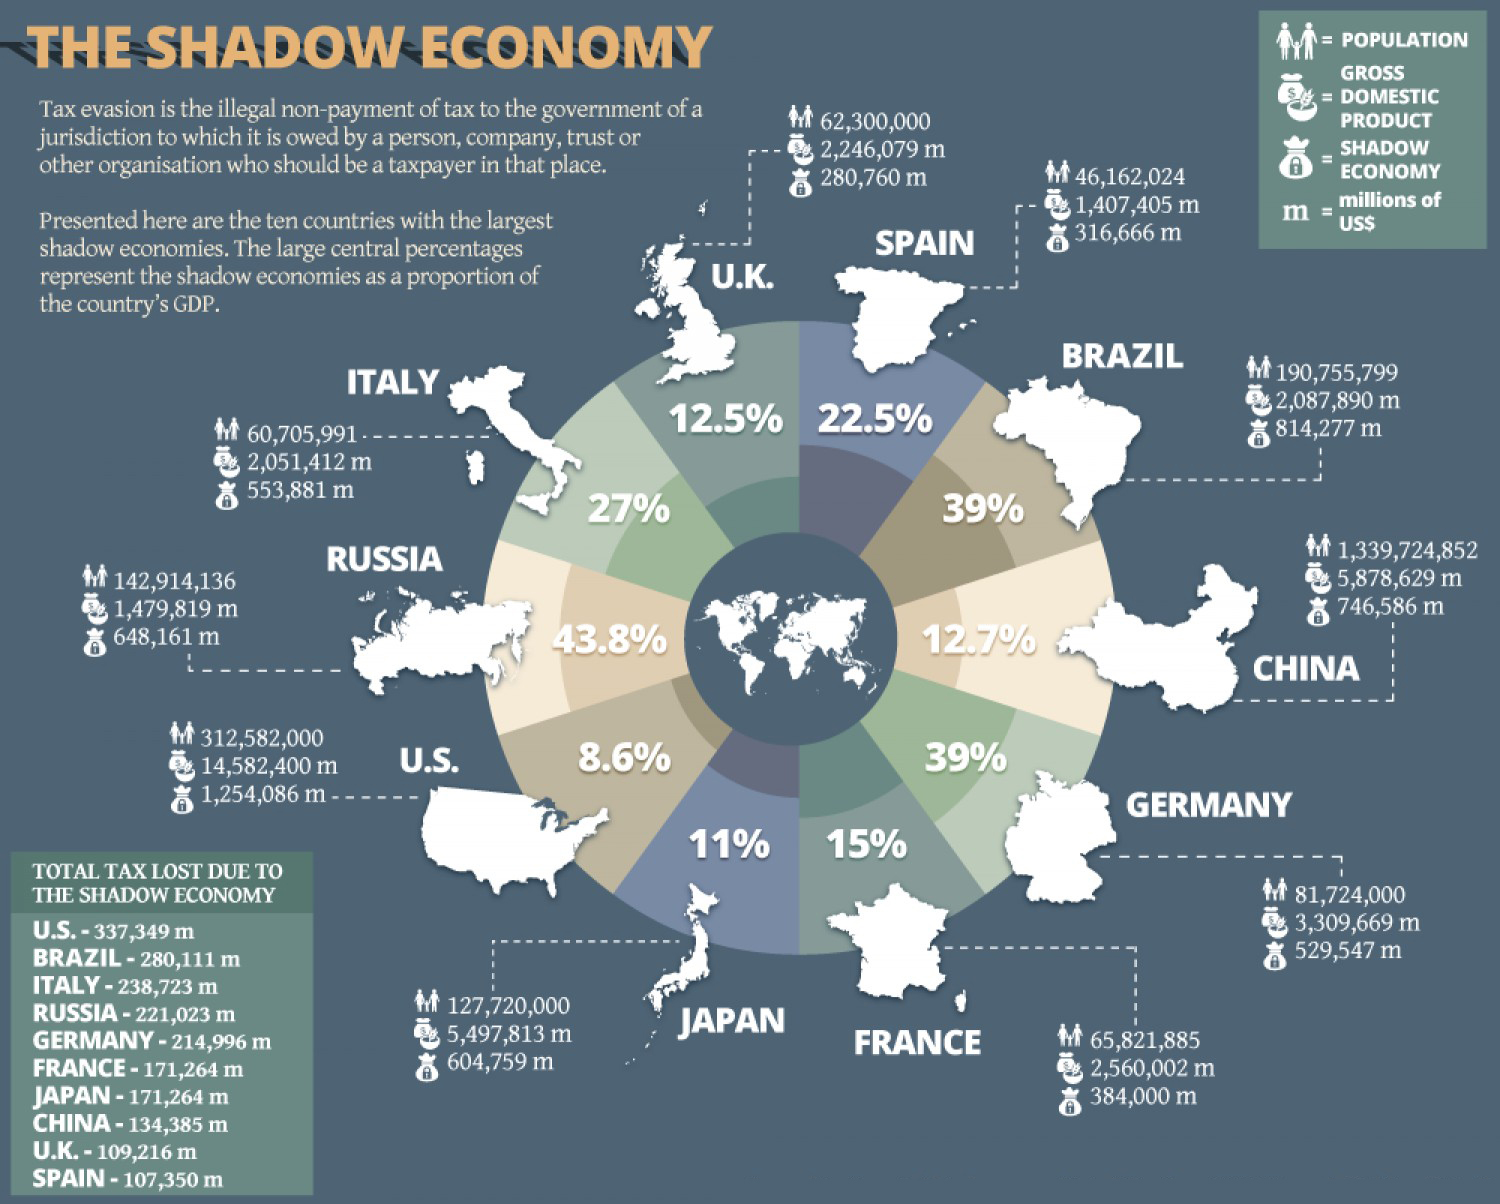 Hyperbitcoinization: Visions of Bitcoin Fueling the Post Covid-19 Shadow Economy